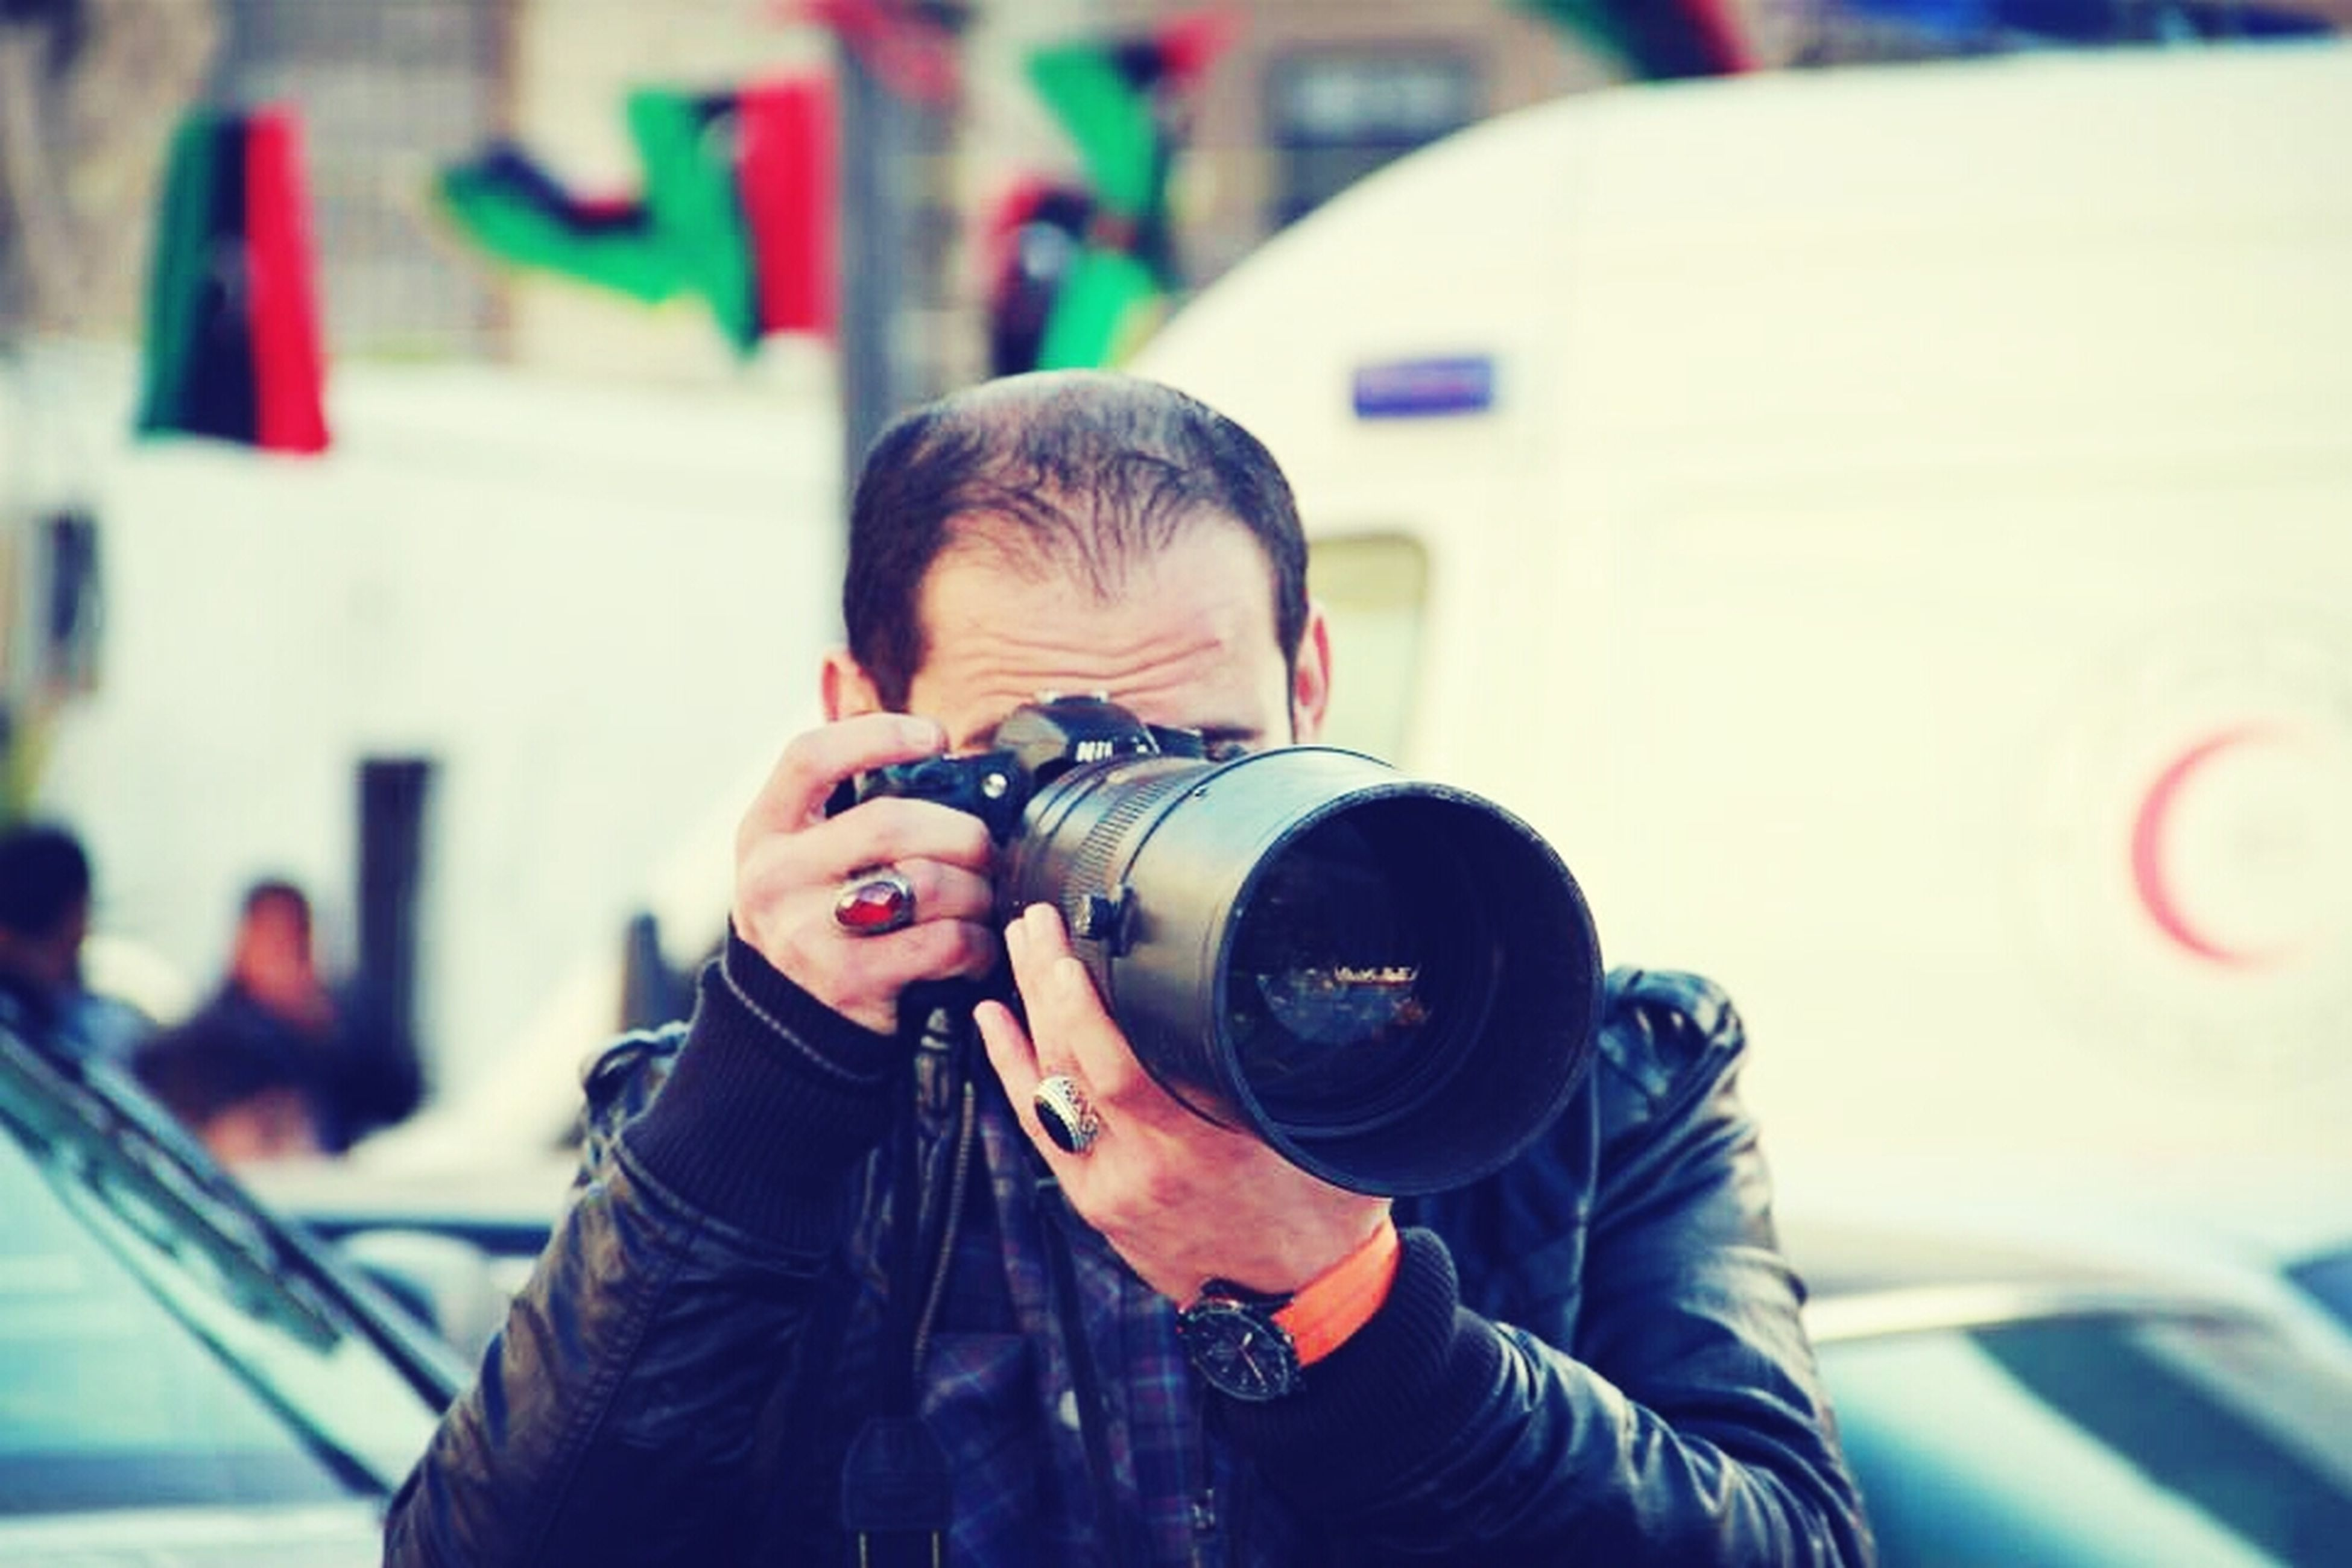 lifestyles, focus on foreground, leisure activity, wireless technology, waist up, photographing, technology, person, photography themes, holding, headshot, communication, smart phone, casual clothing, mobile phone, young adult, head and shoulders, camera - photographic equipment